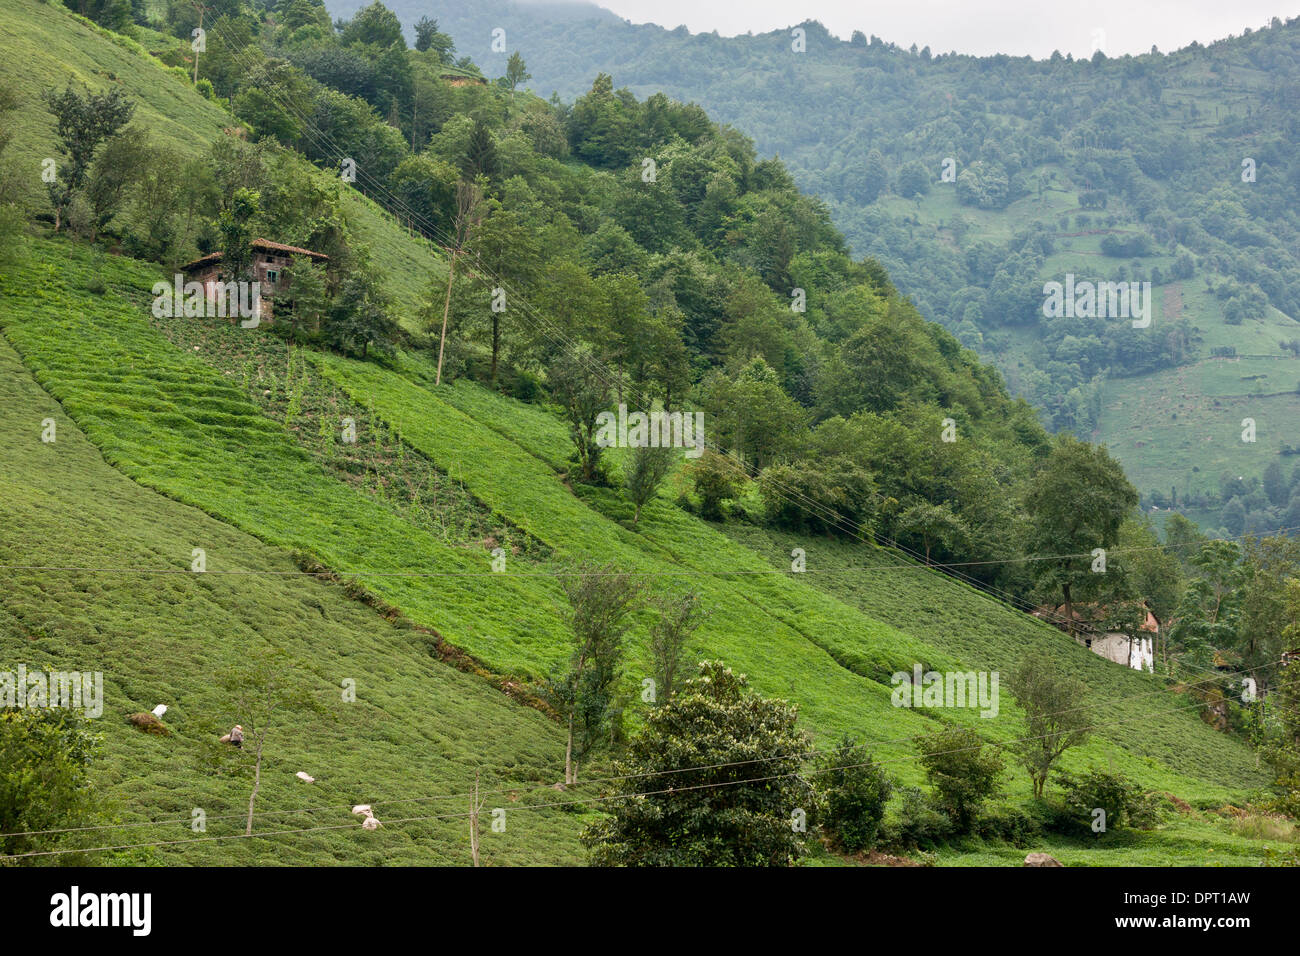 Tea plantations on the steep slopes of the Firtina valley, Pontic Alps, north-east Turkey. - Stock Image